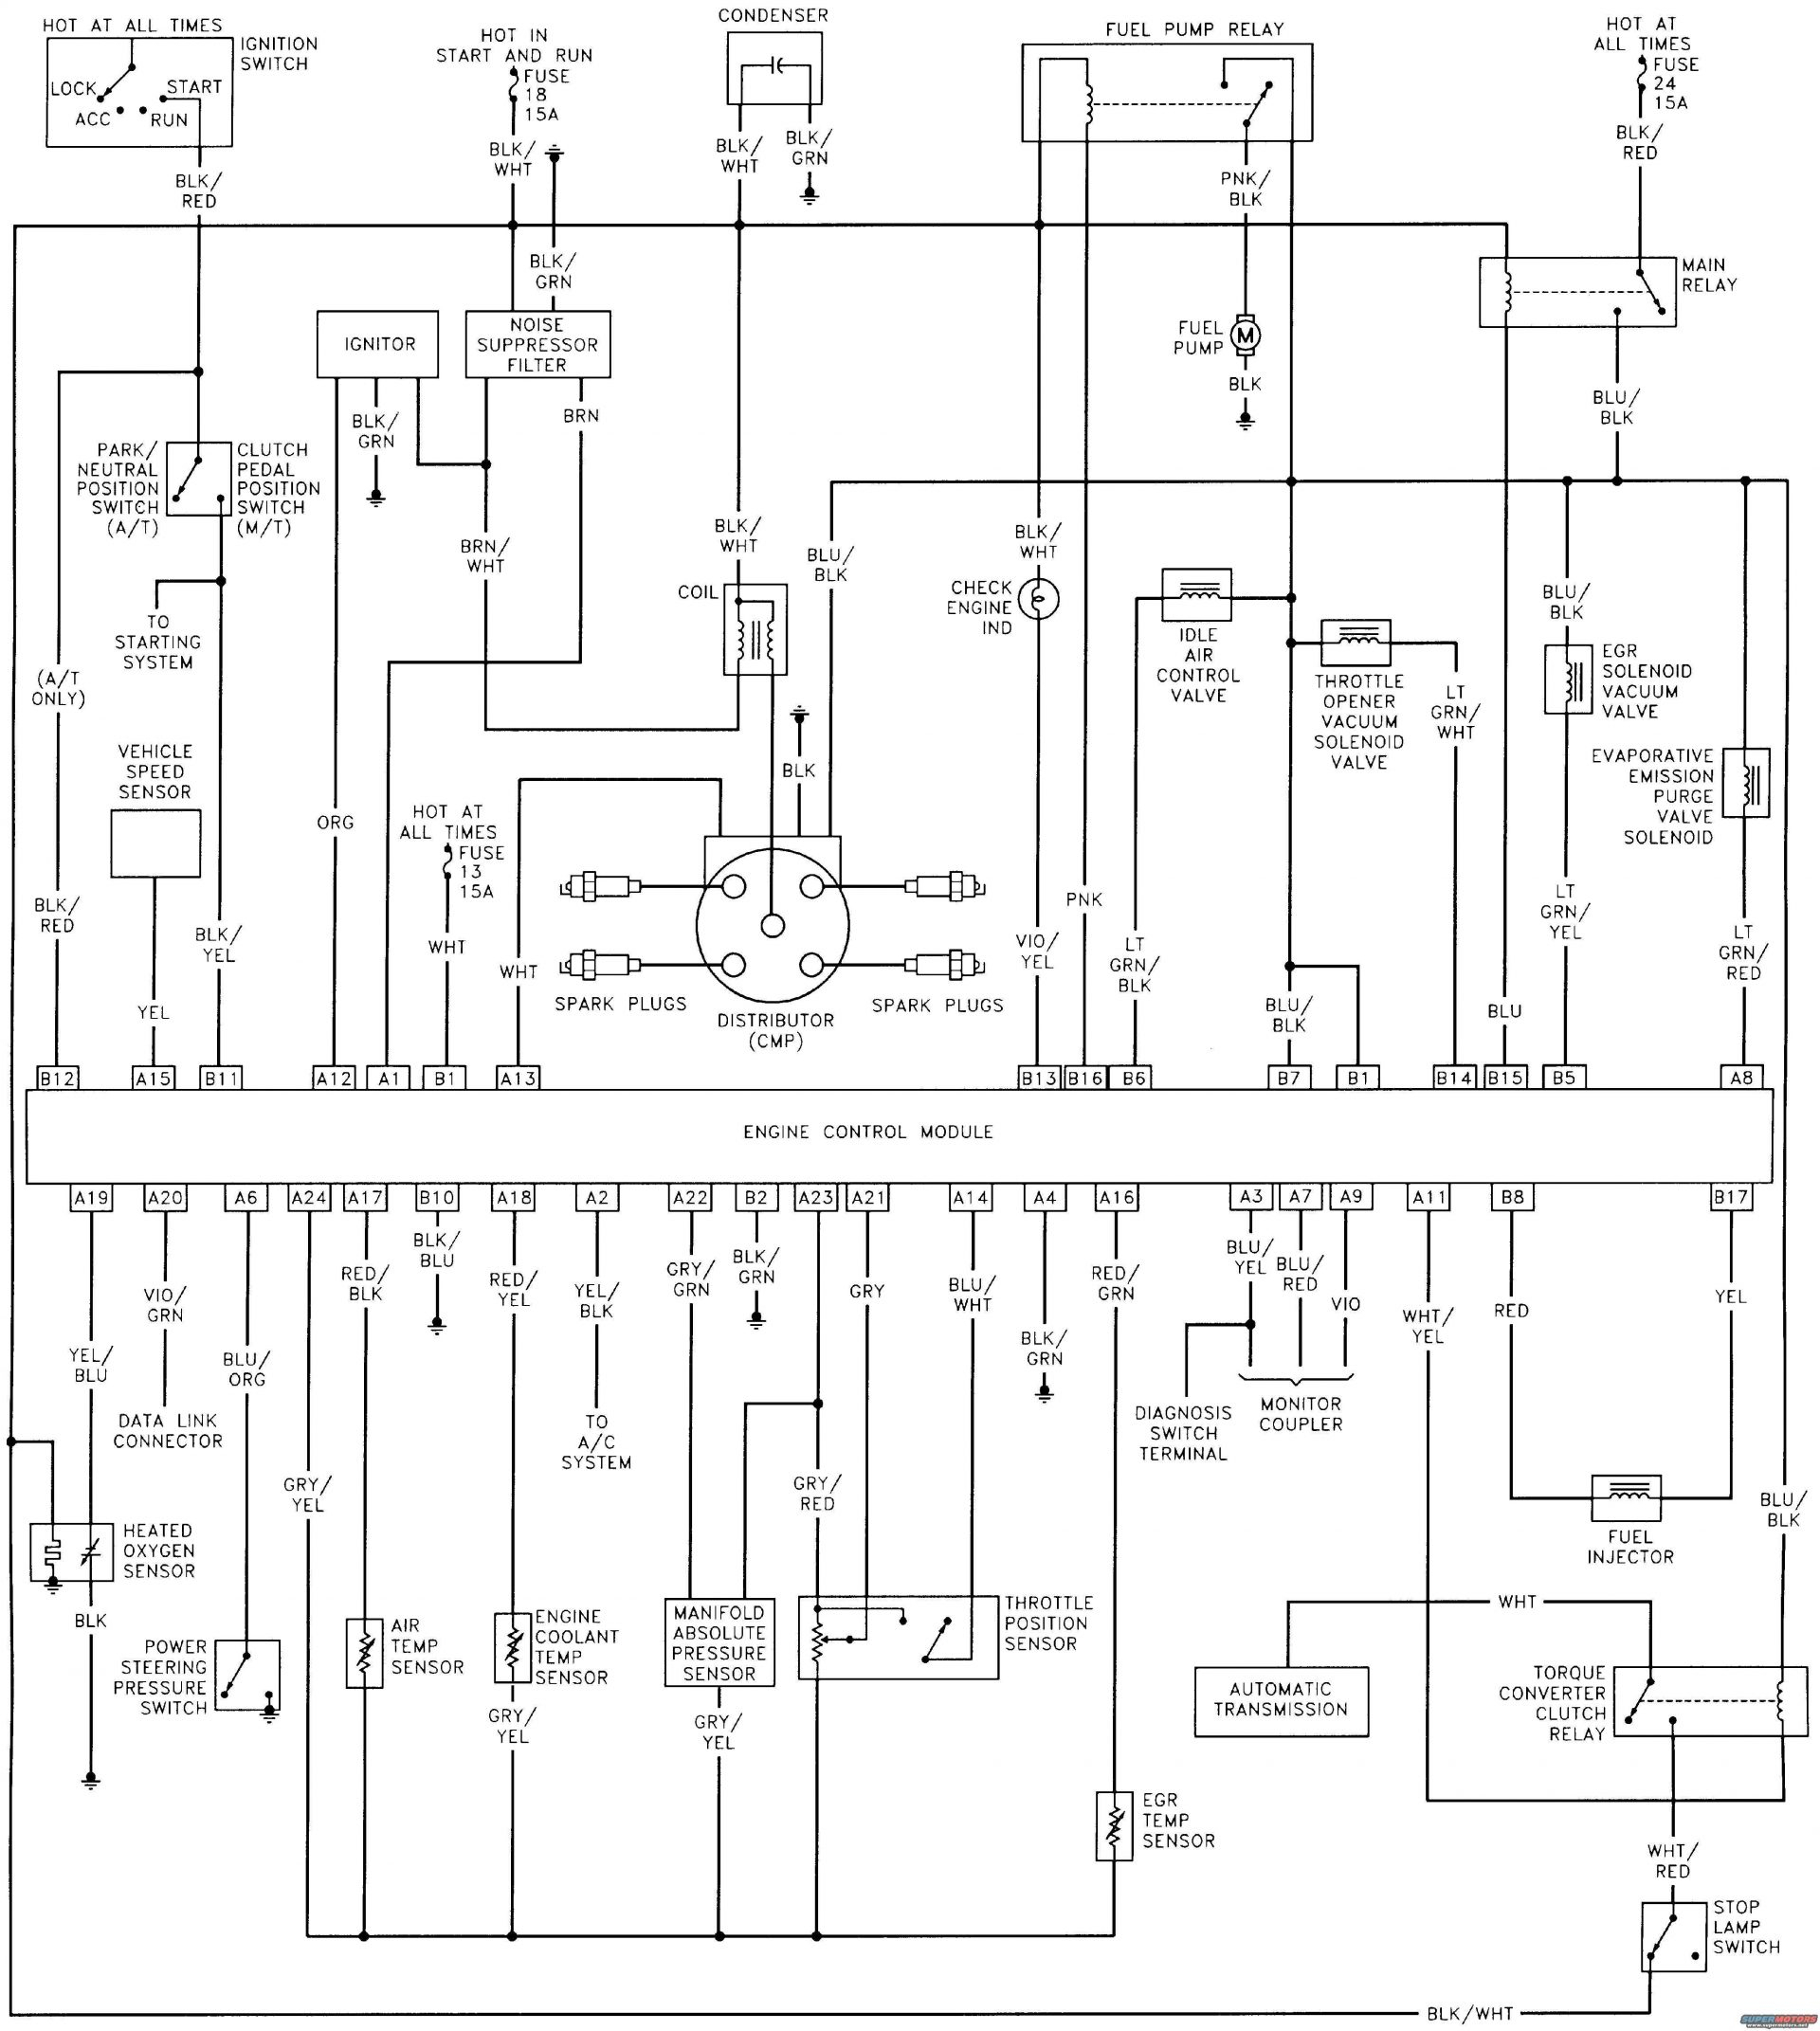 clark forklift ignition switch wiring diagram Collection-Clark Forklift Starter Wiring Diagram Wiring Data 15-g